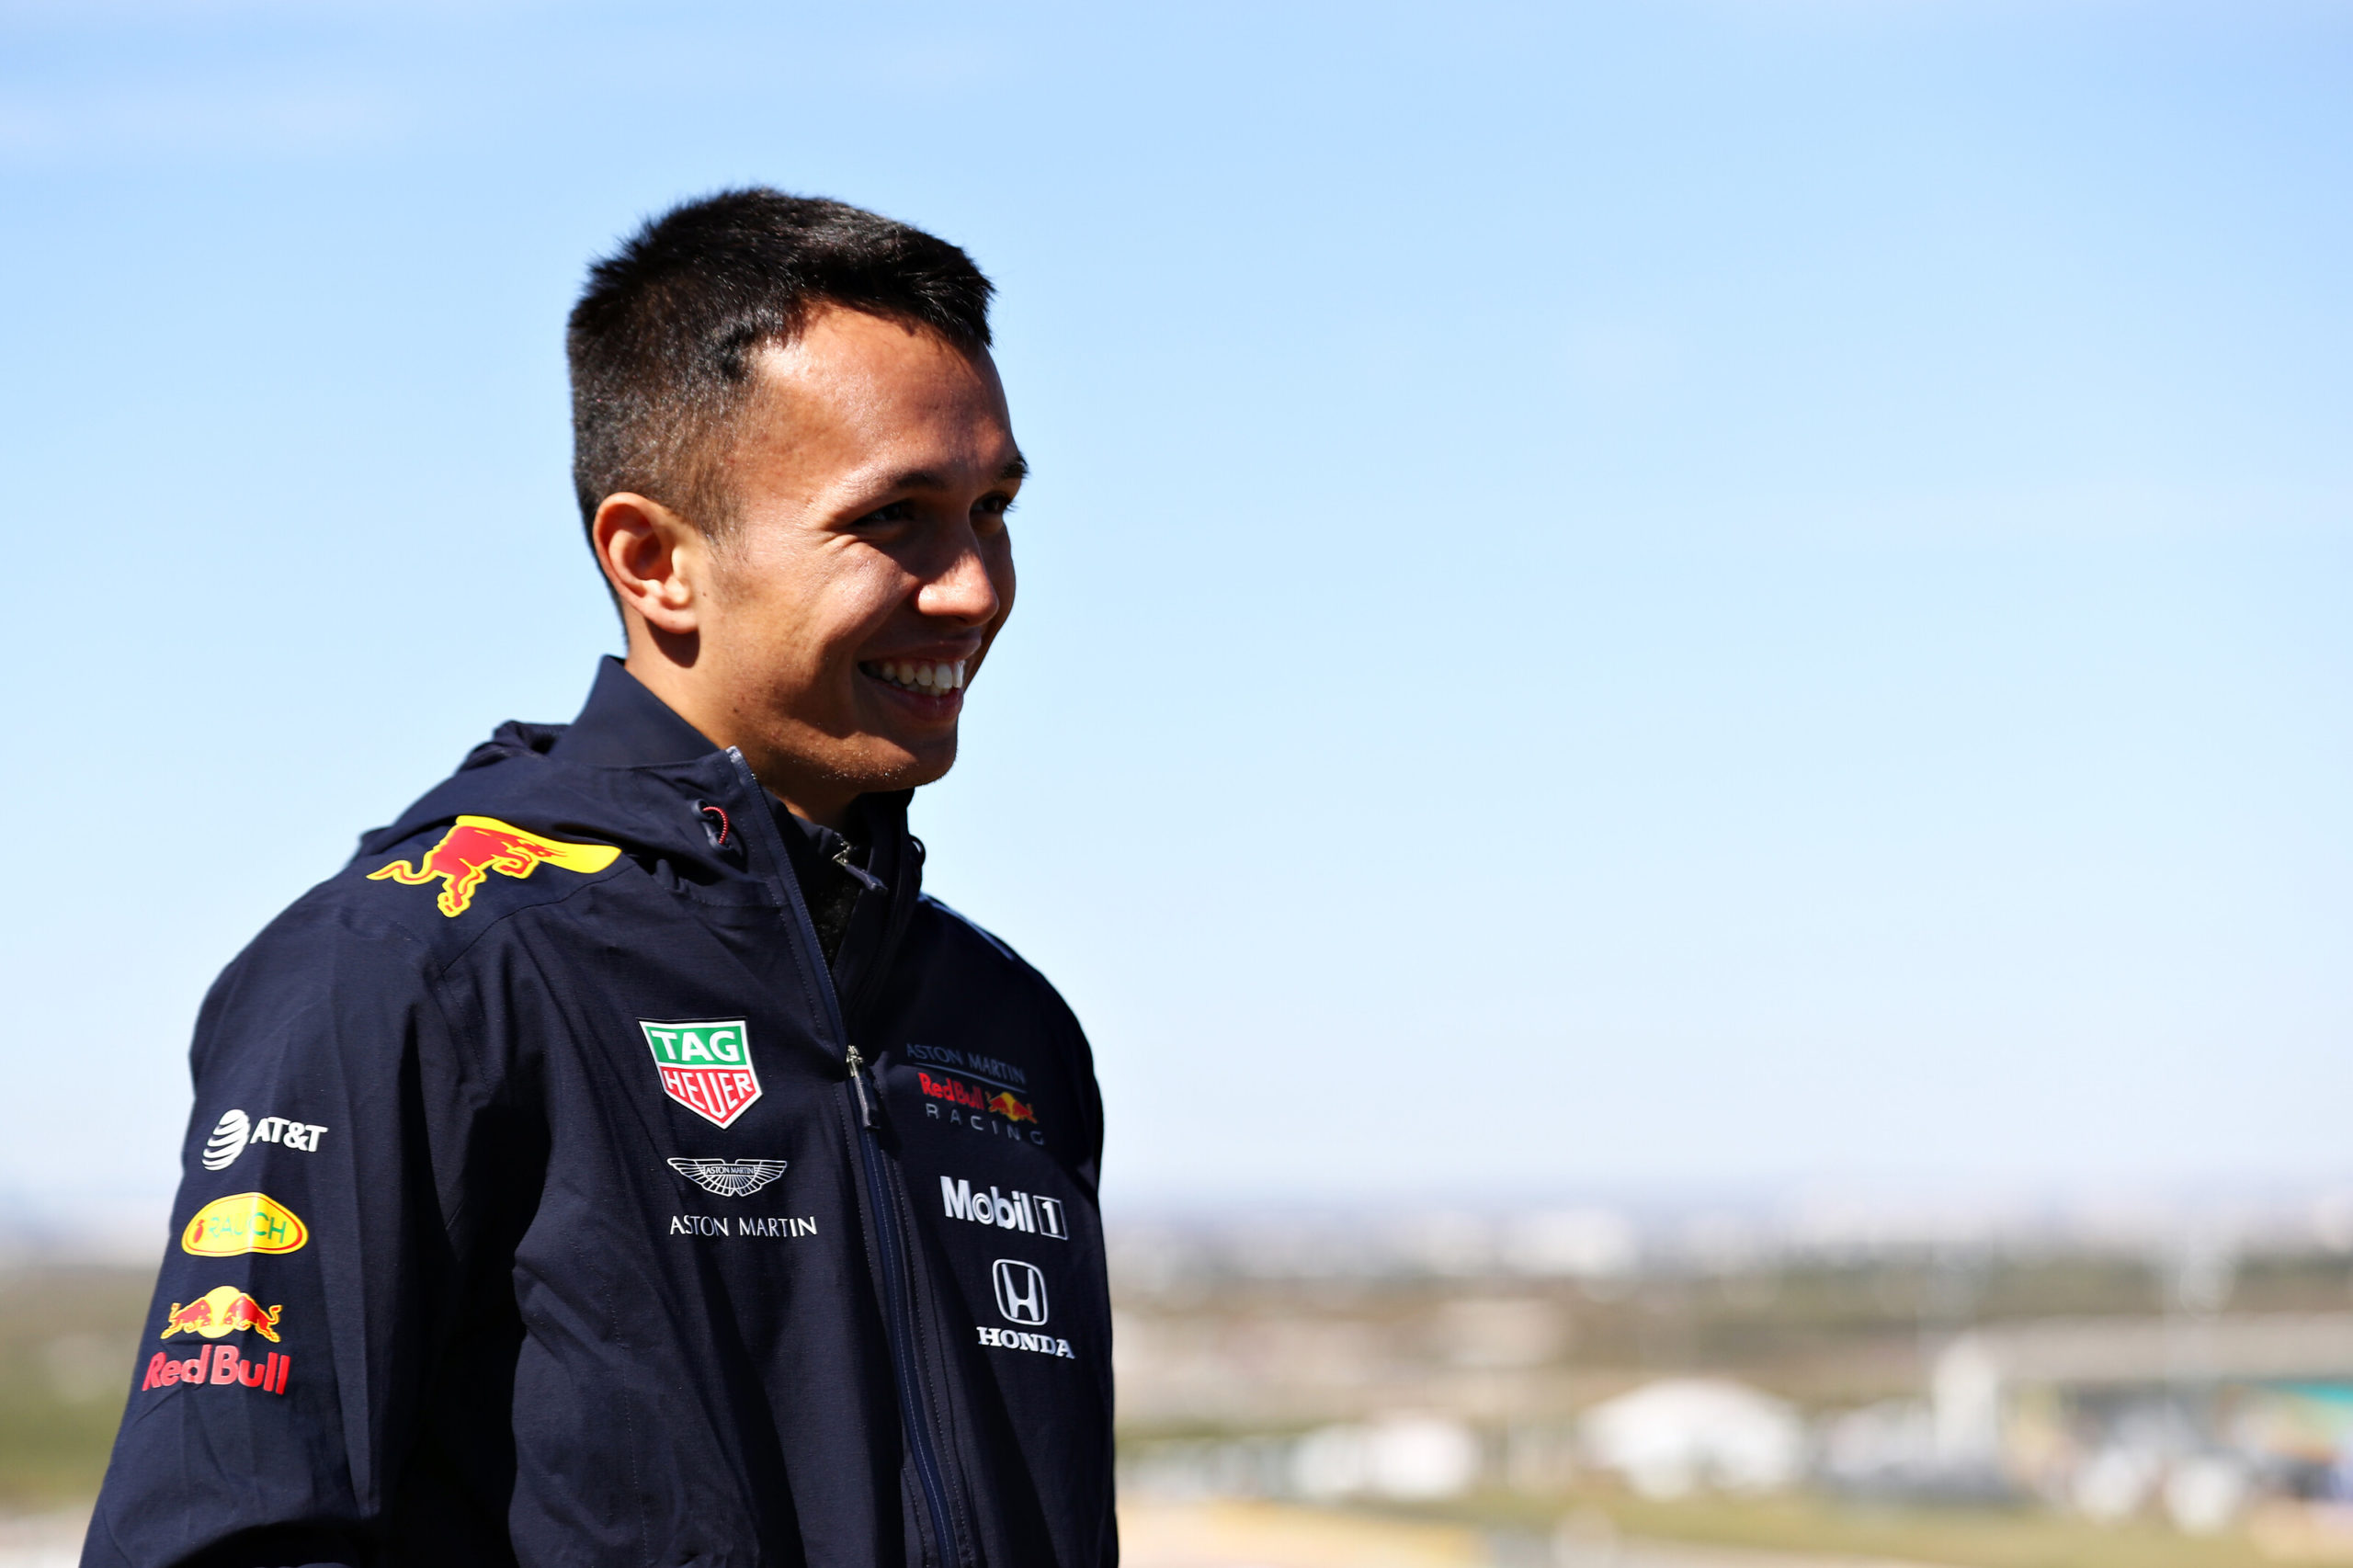 Formula 1 - Alex Albon joins DTM with Red Bull backing